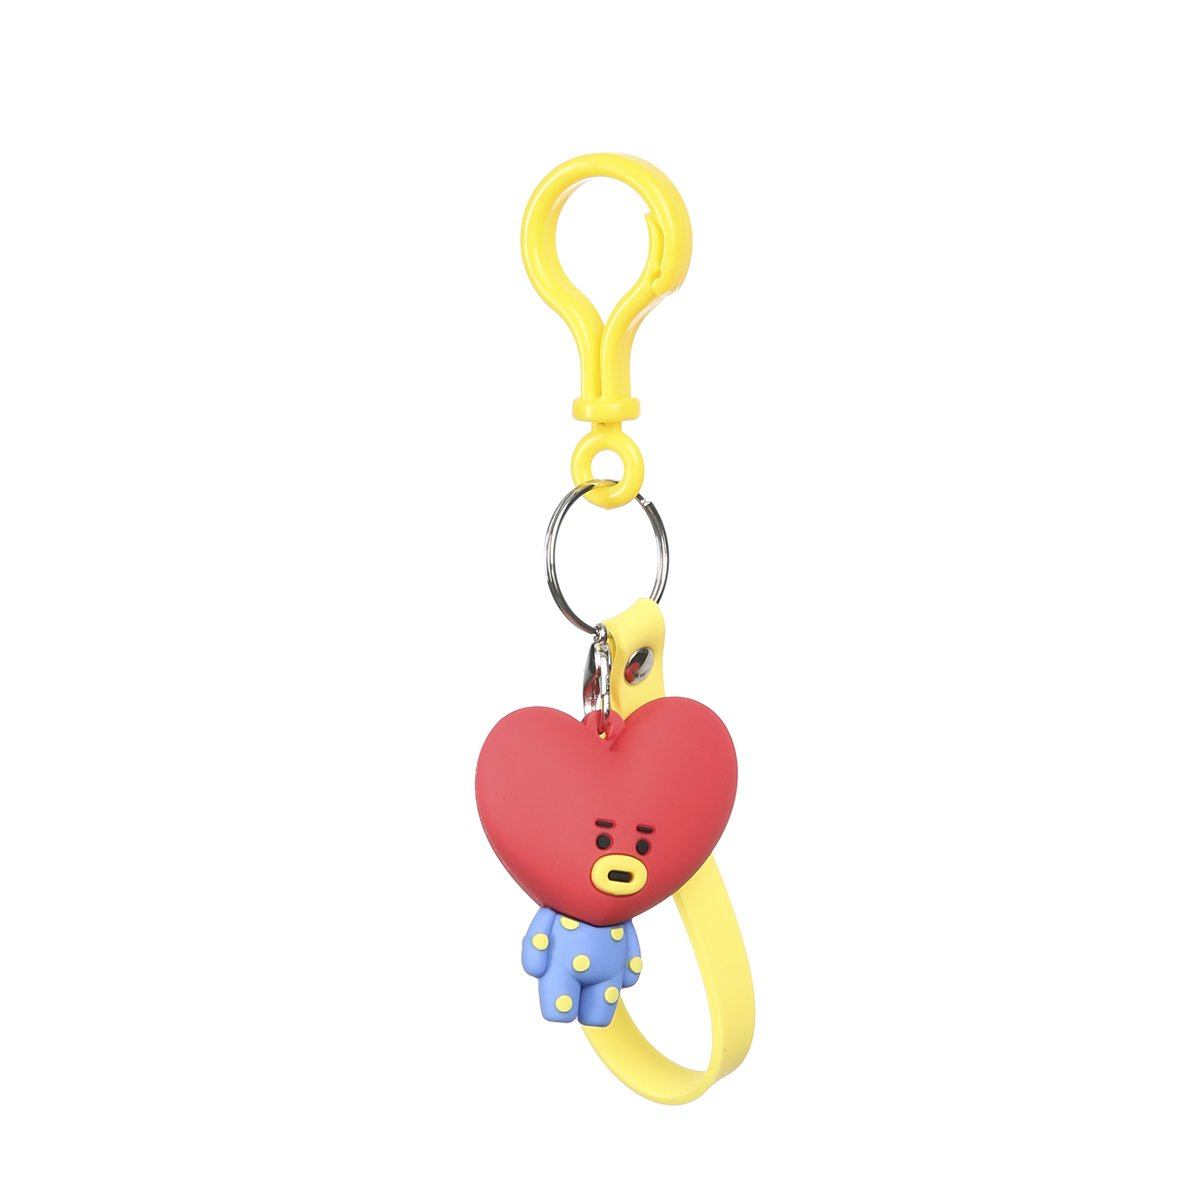 Amazon.com : Cartoon Keychain Cute Key Ring Wallet Purse Bag ...